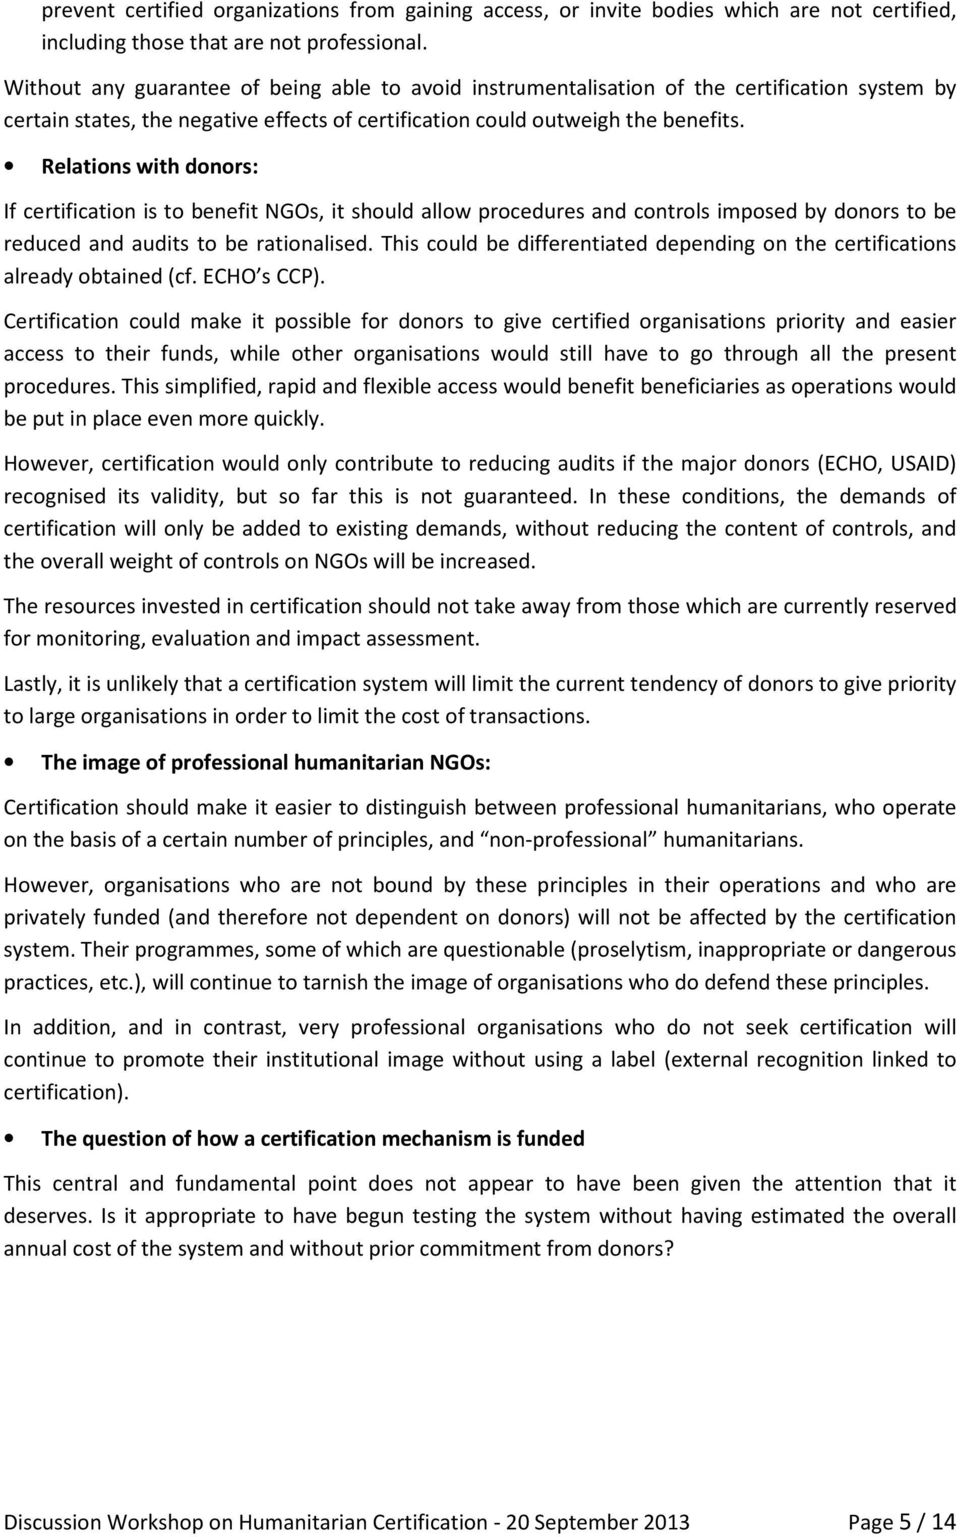 Relations with donors: If certification is to benefit NGOs, it should allow procedures and controls imposed by donors to be reduced and audits to be rationalised.